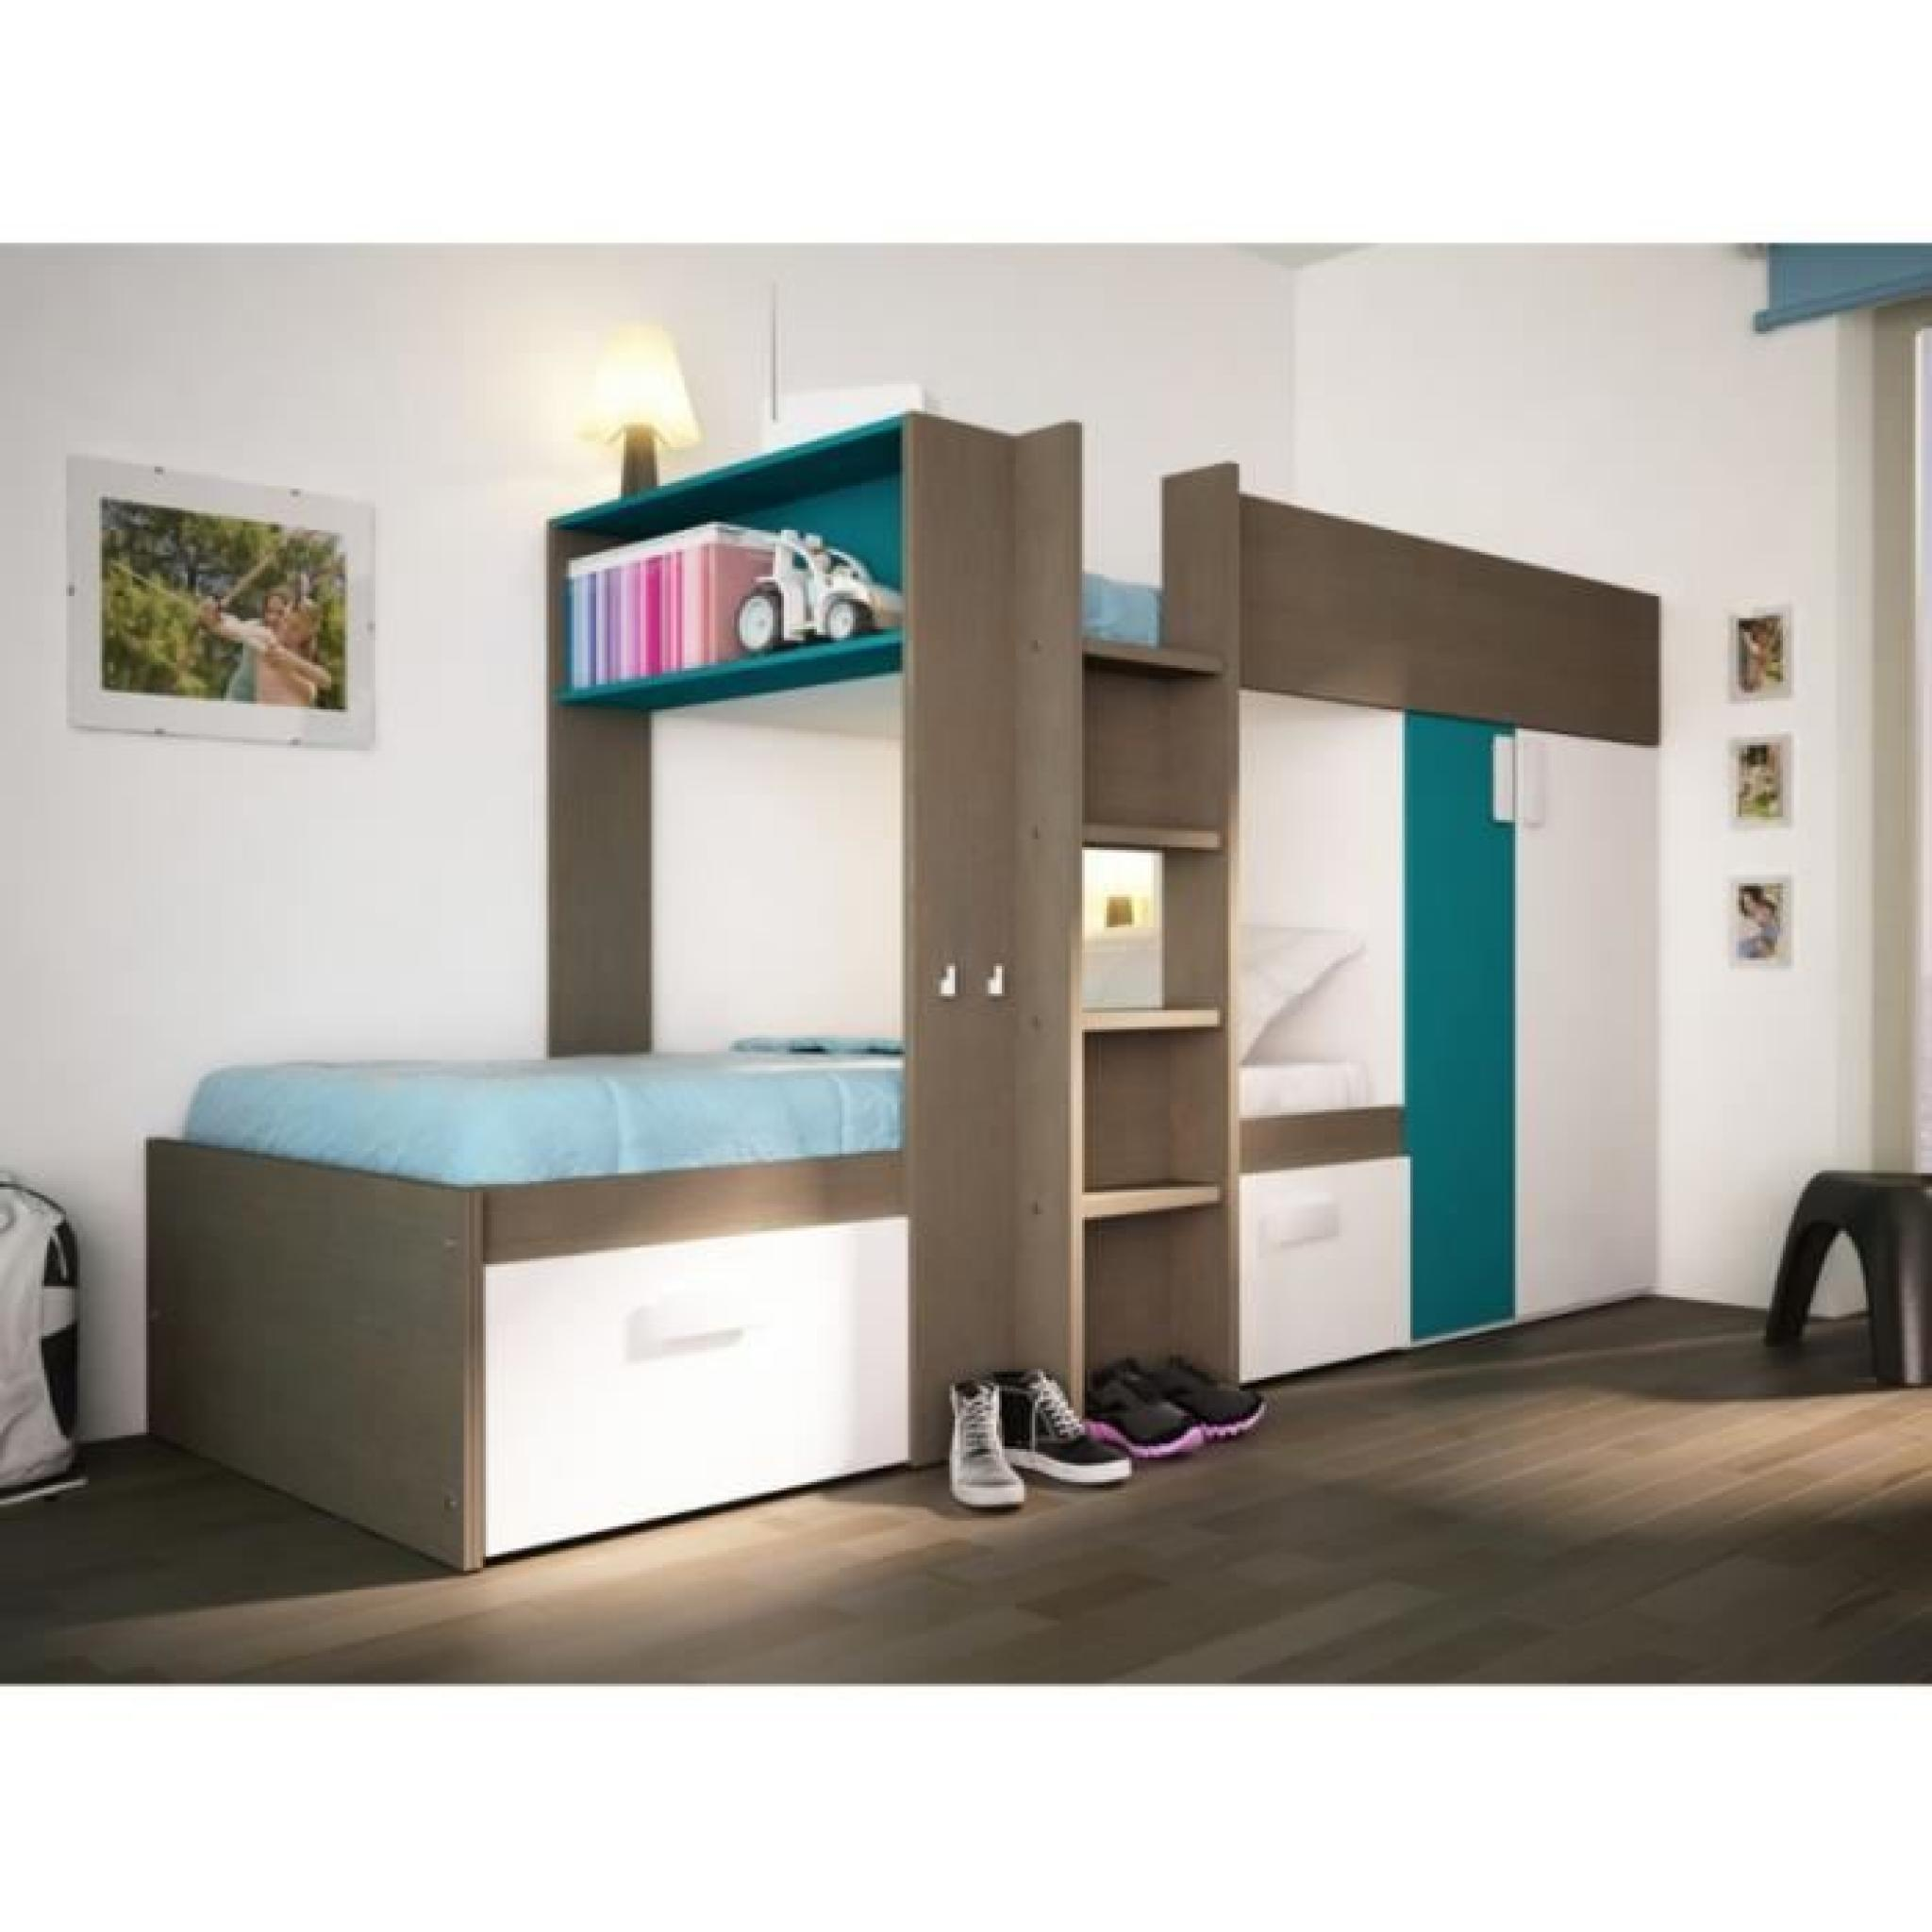 lits superpos s julien 2x90x190cm armoire int gr e taupe et bleu achat vente lit. Black Bedroom Furniture Sets. Home Design Ideas